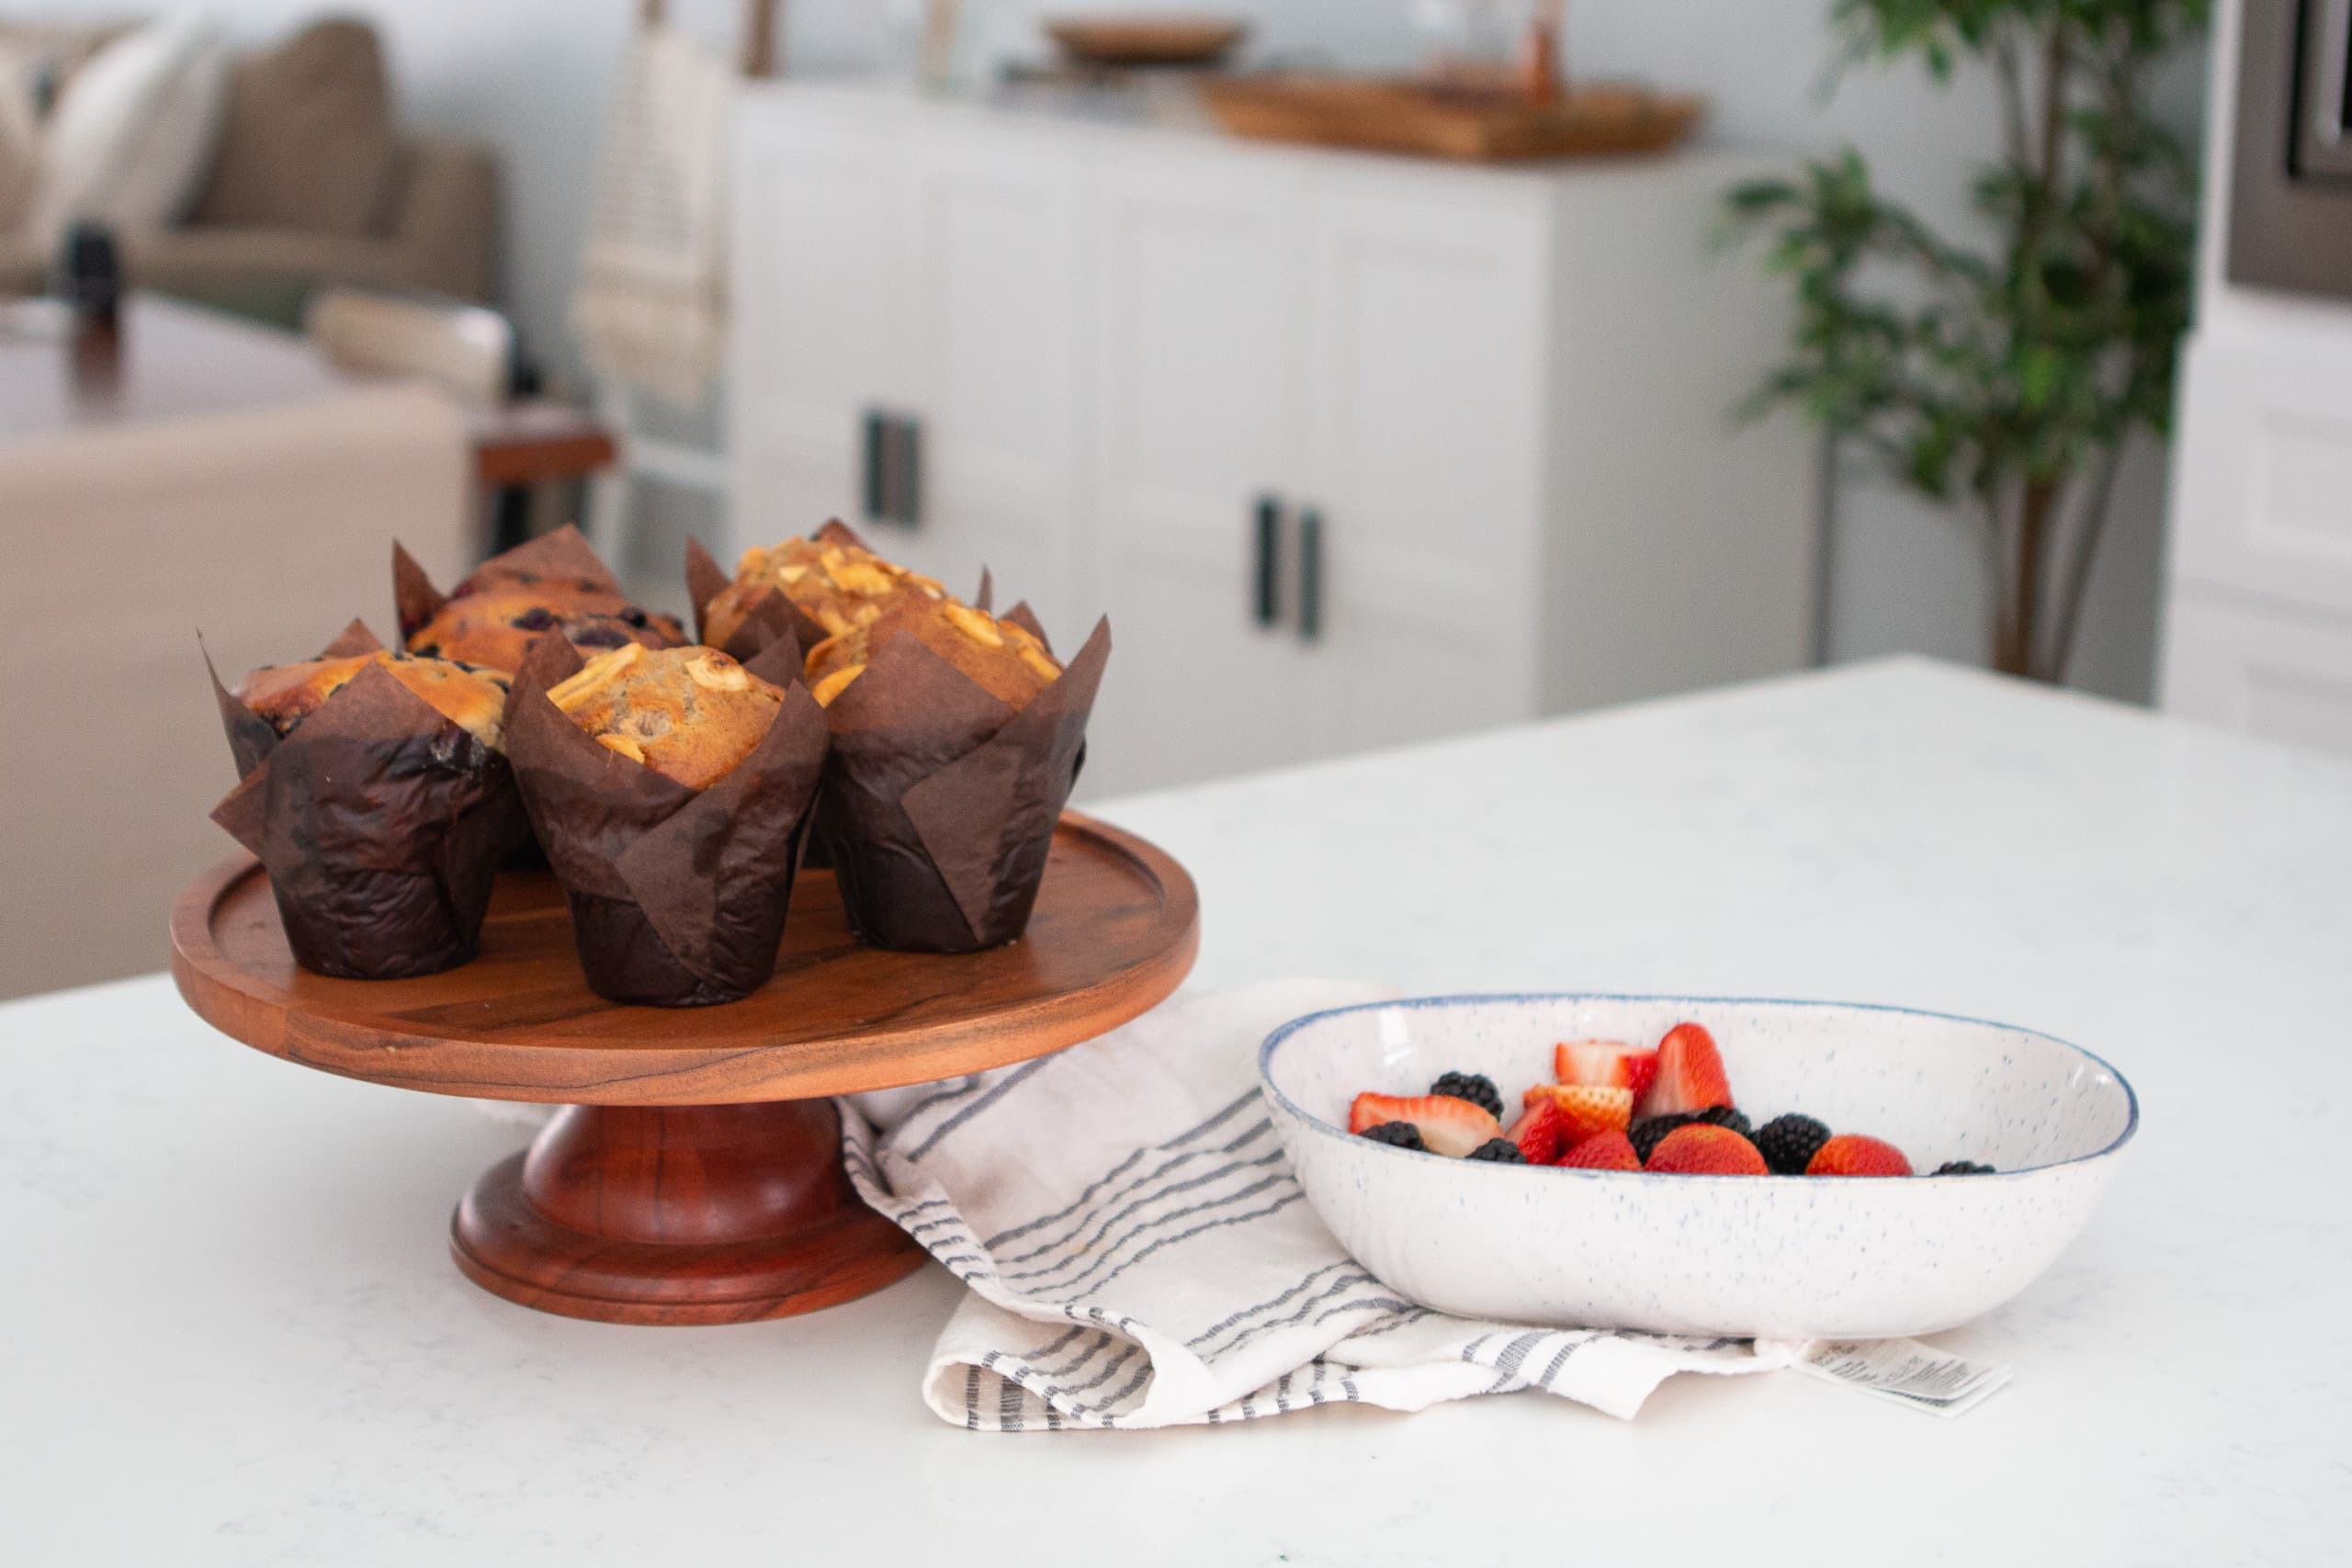 Muffins on a kitchen countertop